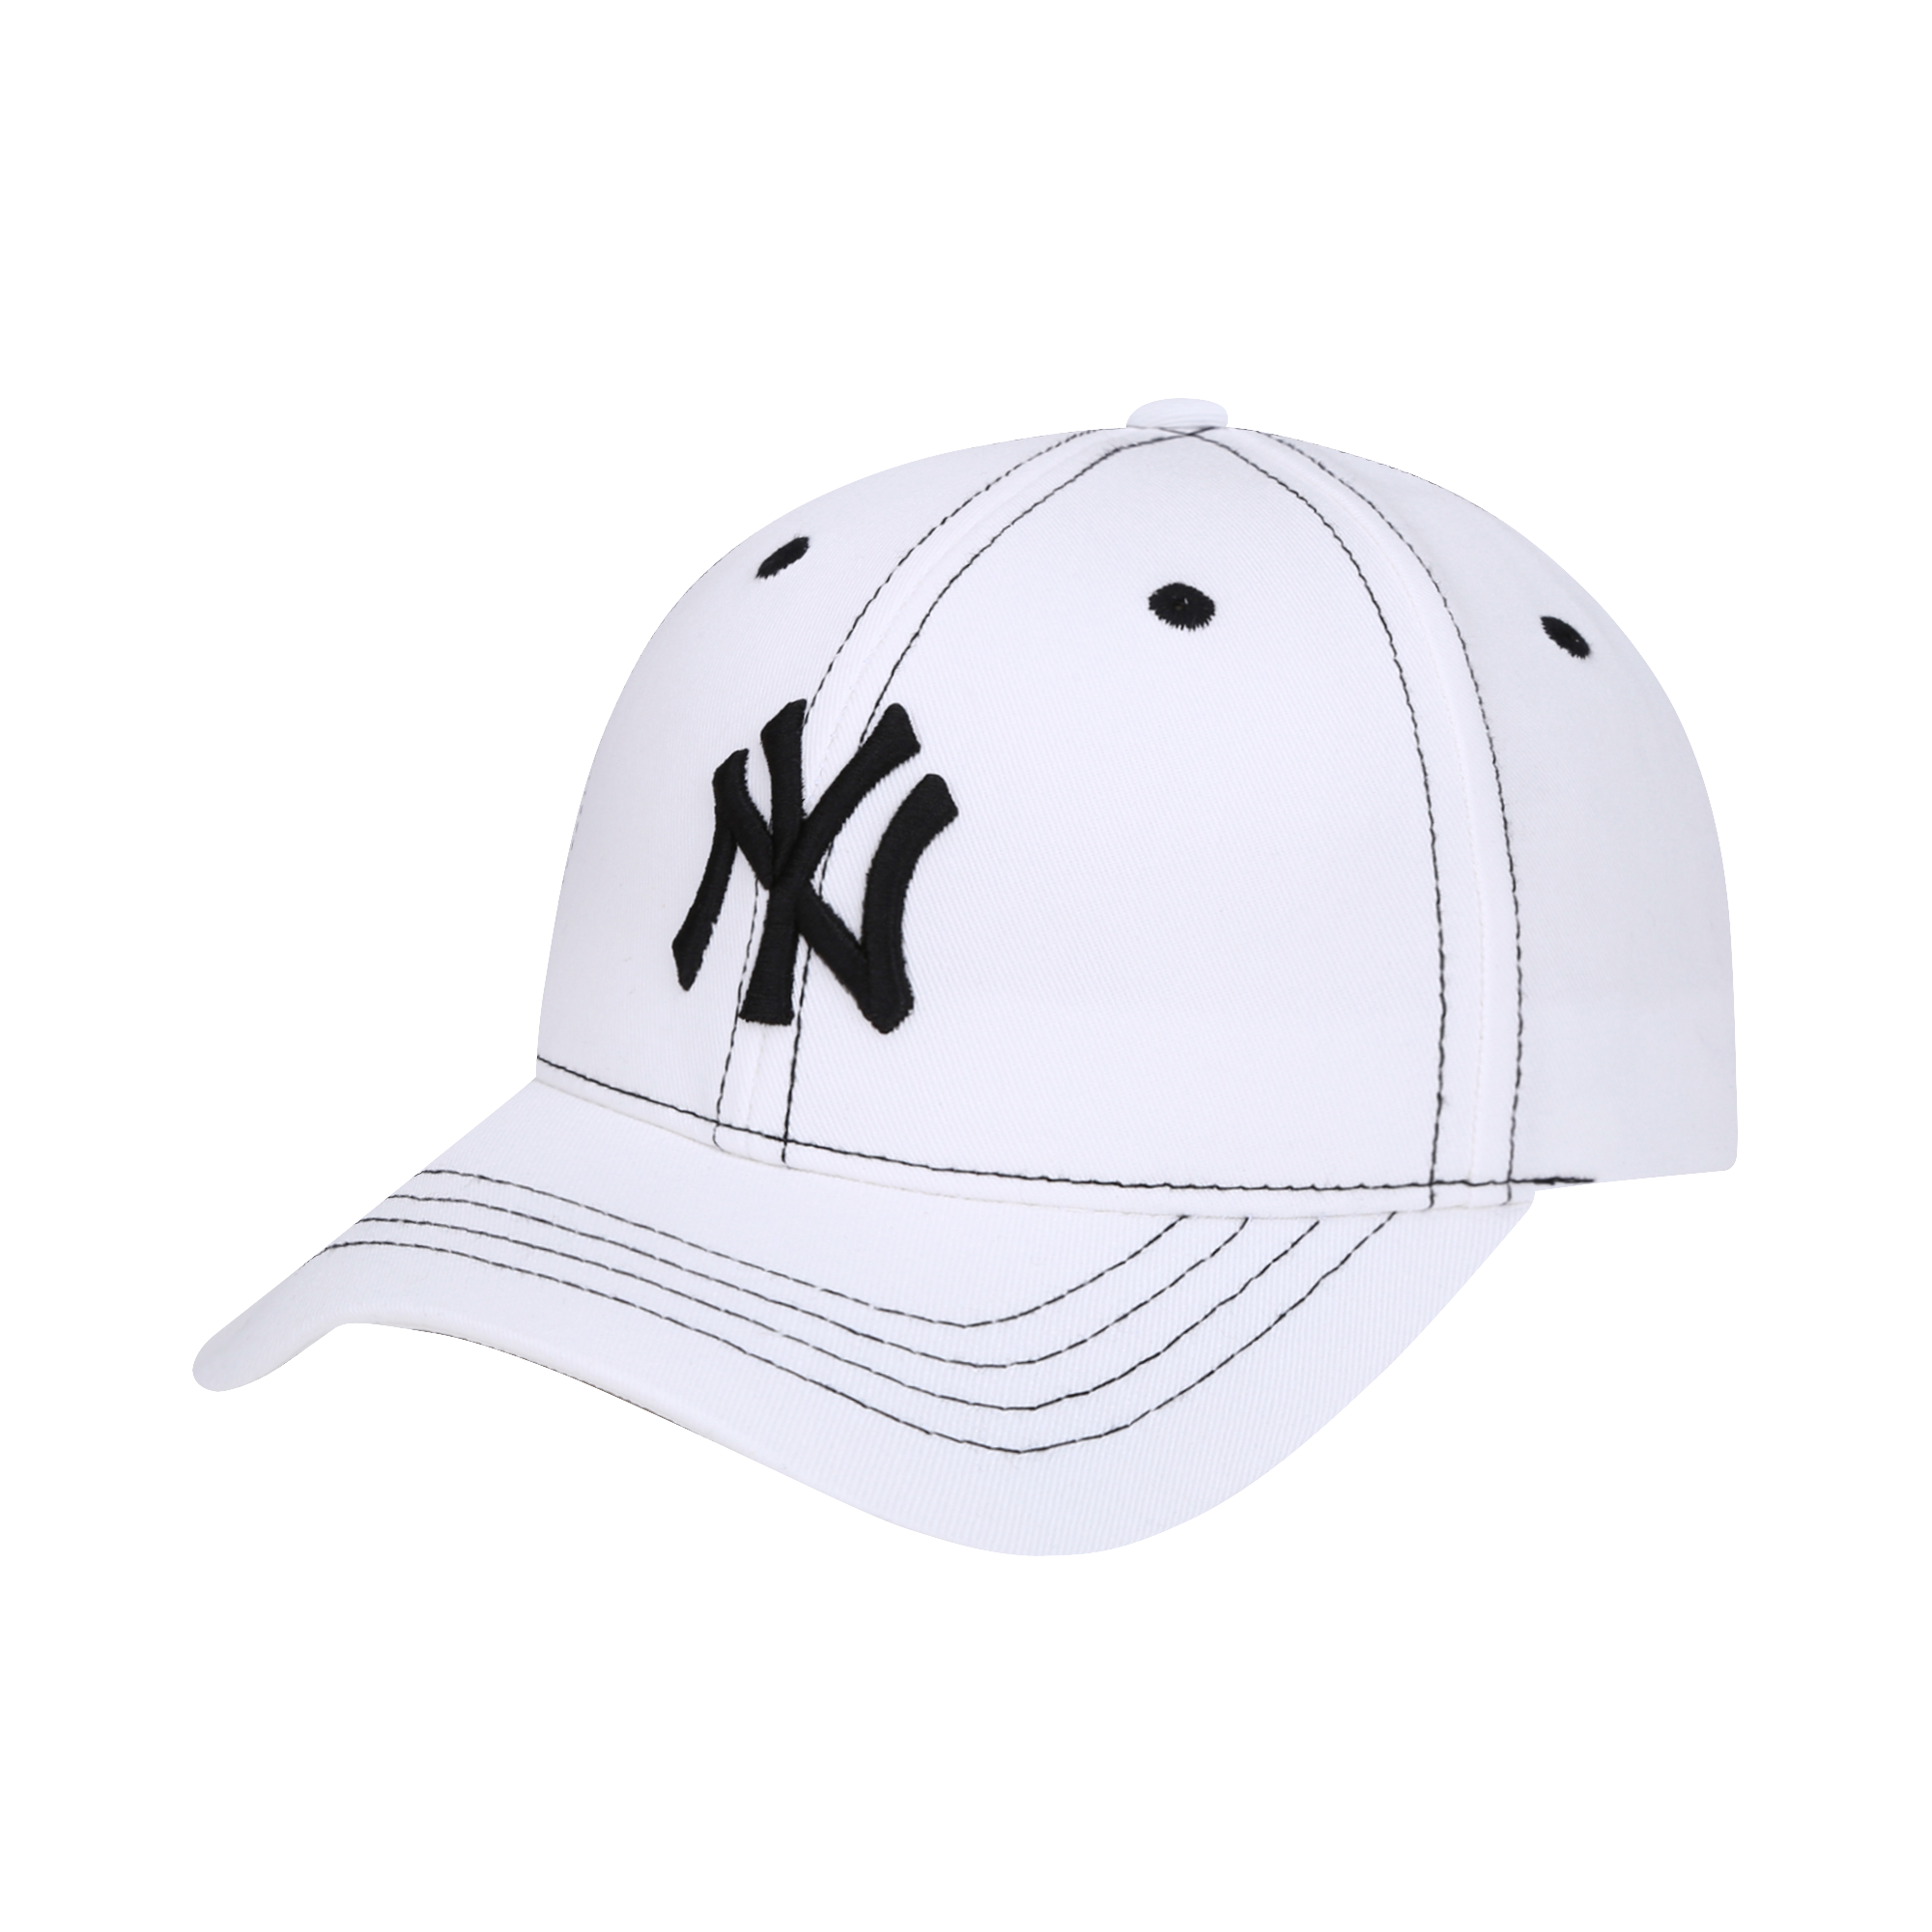 NEW YORK YANKEES STITCH POINT BALL CAP